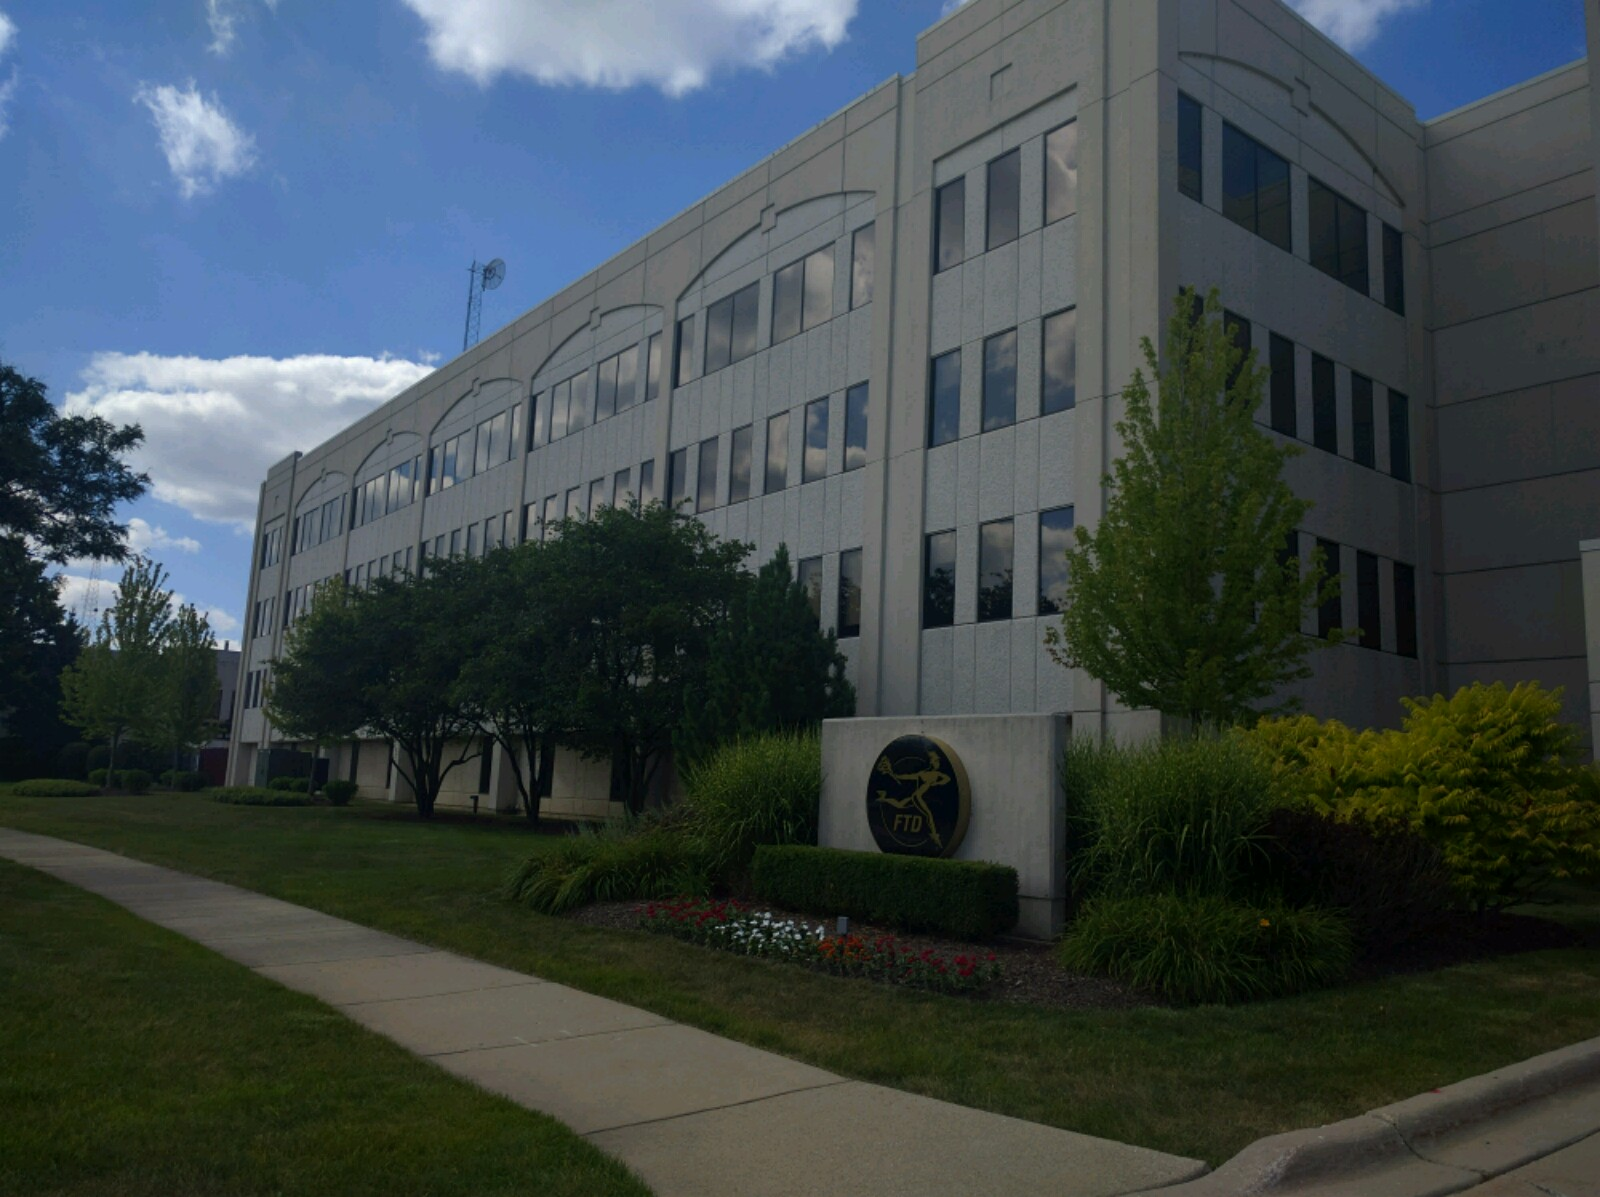 FTD's corporate headquarters in Downers Grove, Illinois.